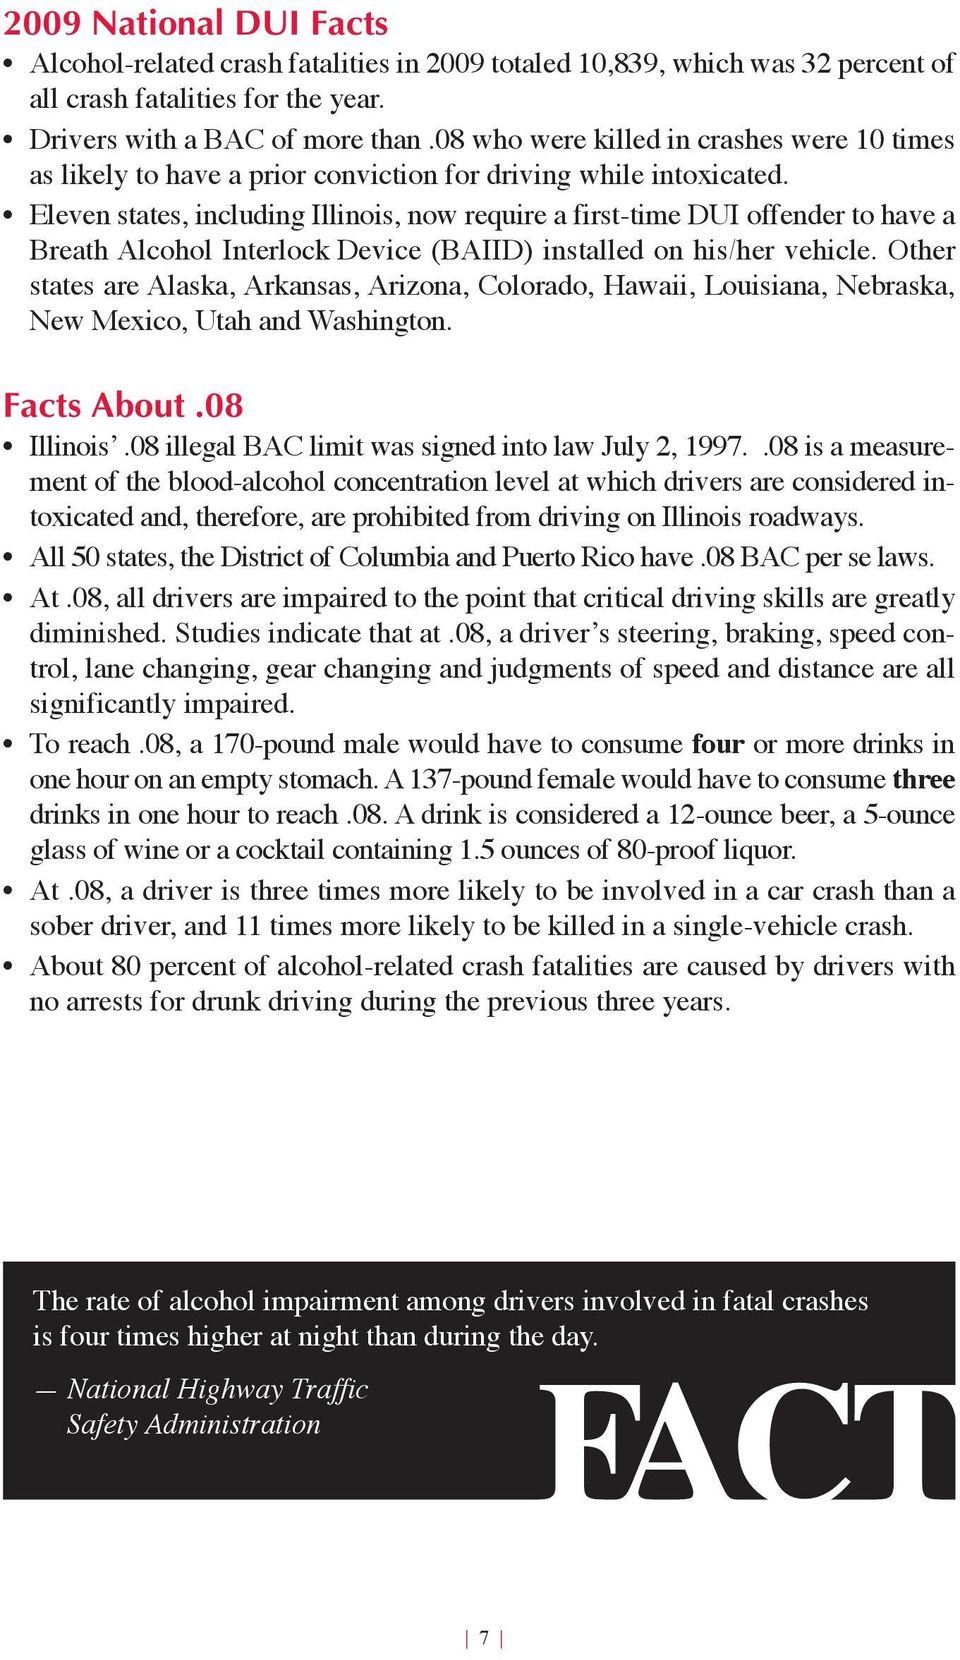 Eleven states, including Illinois, now require a first-time DUI offender to have a Breath Alcohol Interlock Device (BAIID) installed on his/her vehicle.